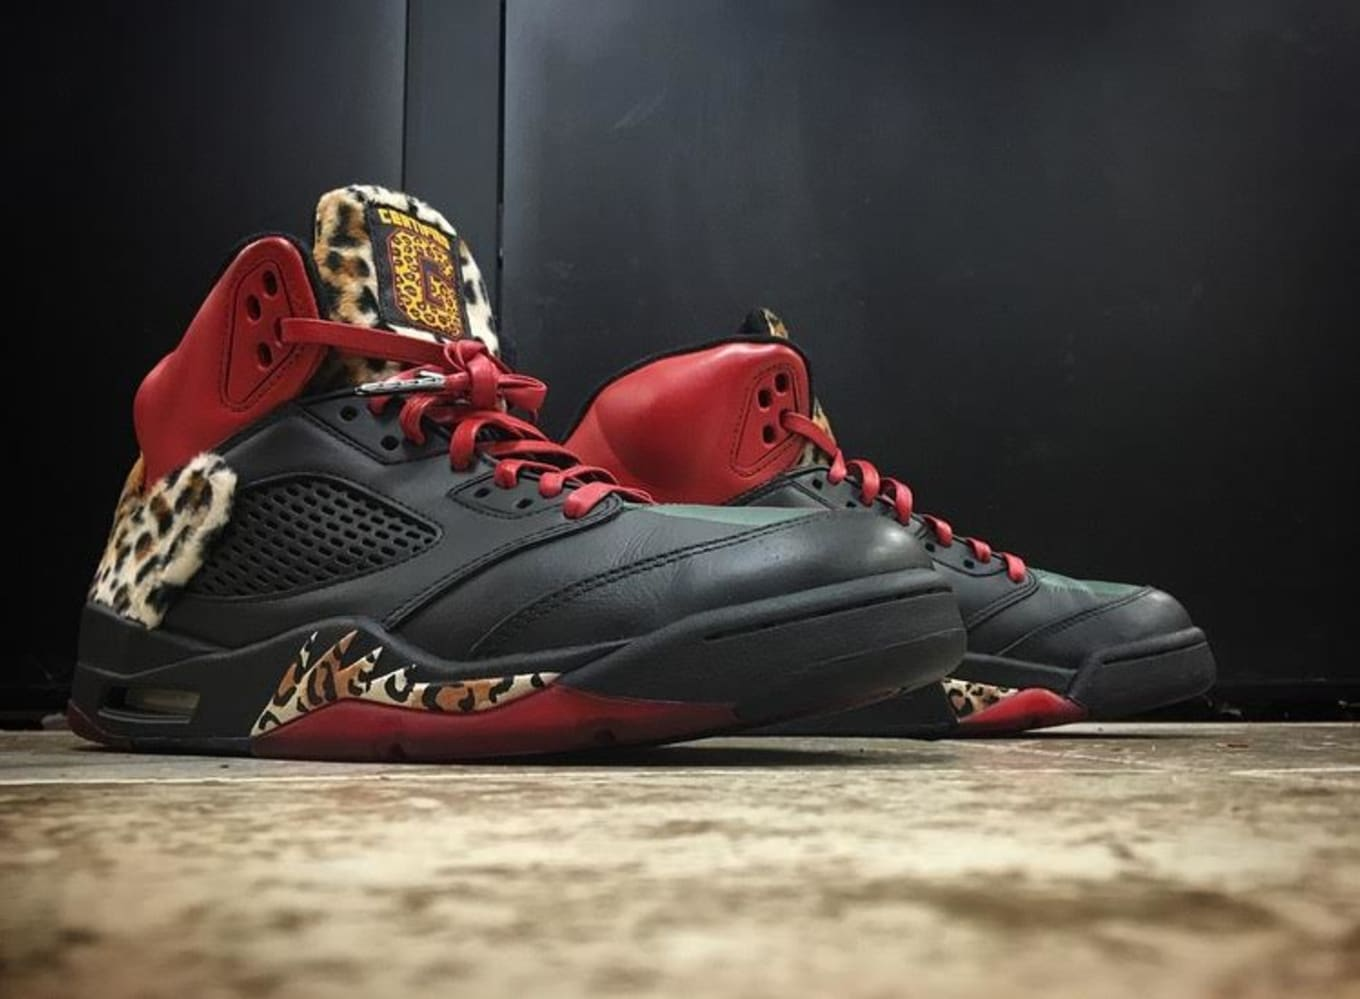 best sneakers 4a754 82a4f Enzo Amore Rocked Certified Custom Air Jordans on Raw Tonight. Mache and  Big A team up for leopard-laden custom.